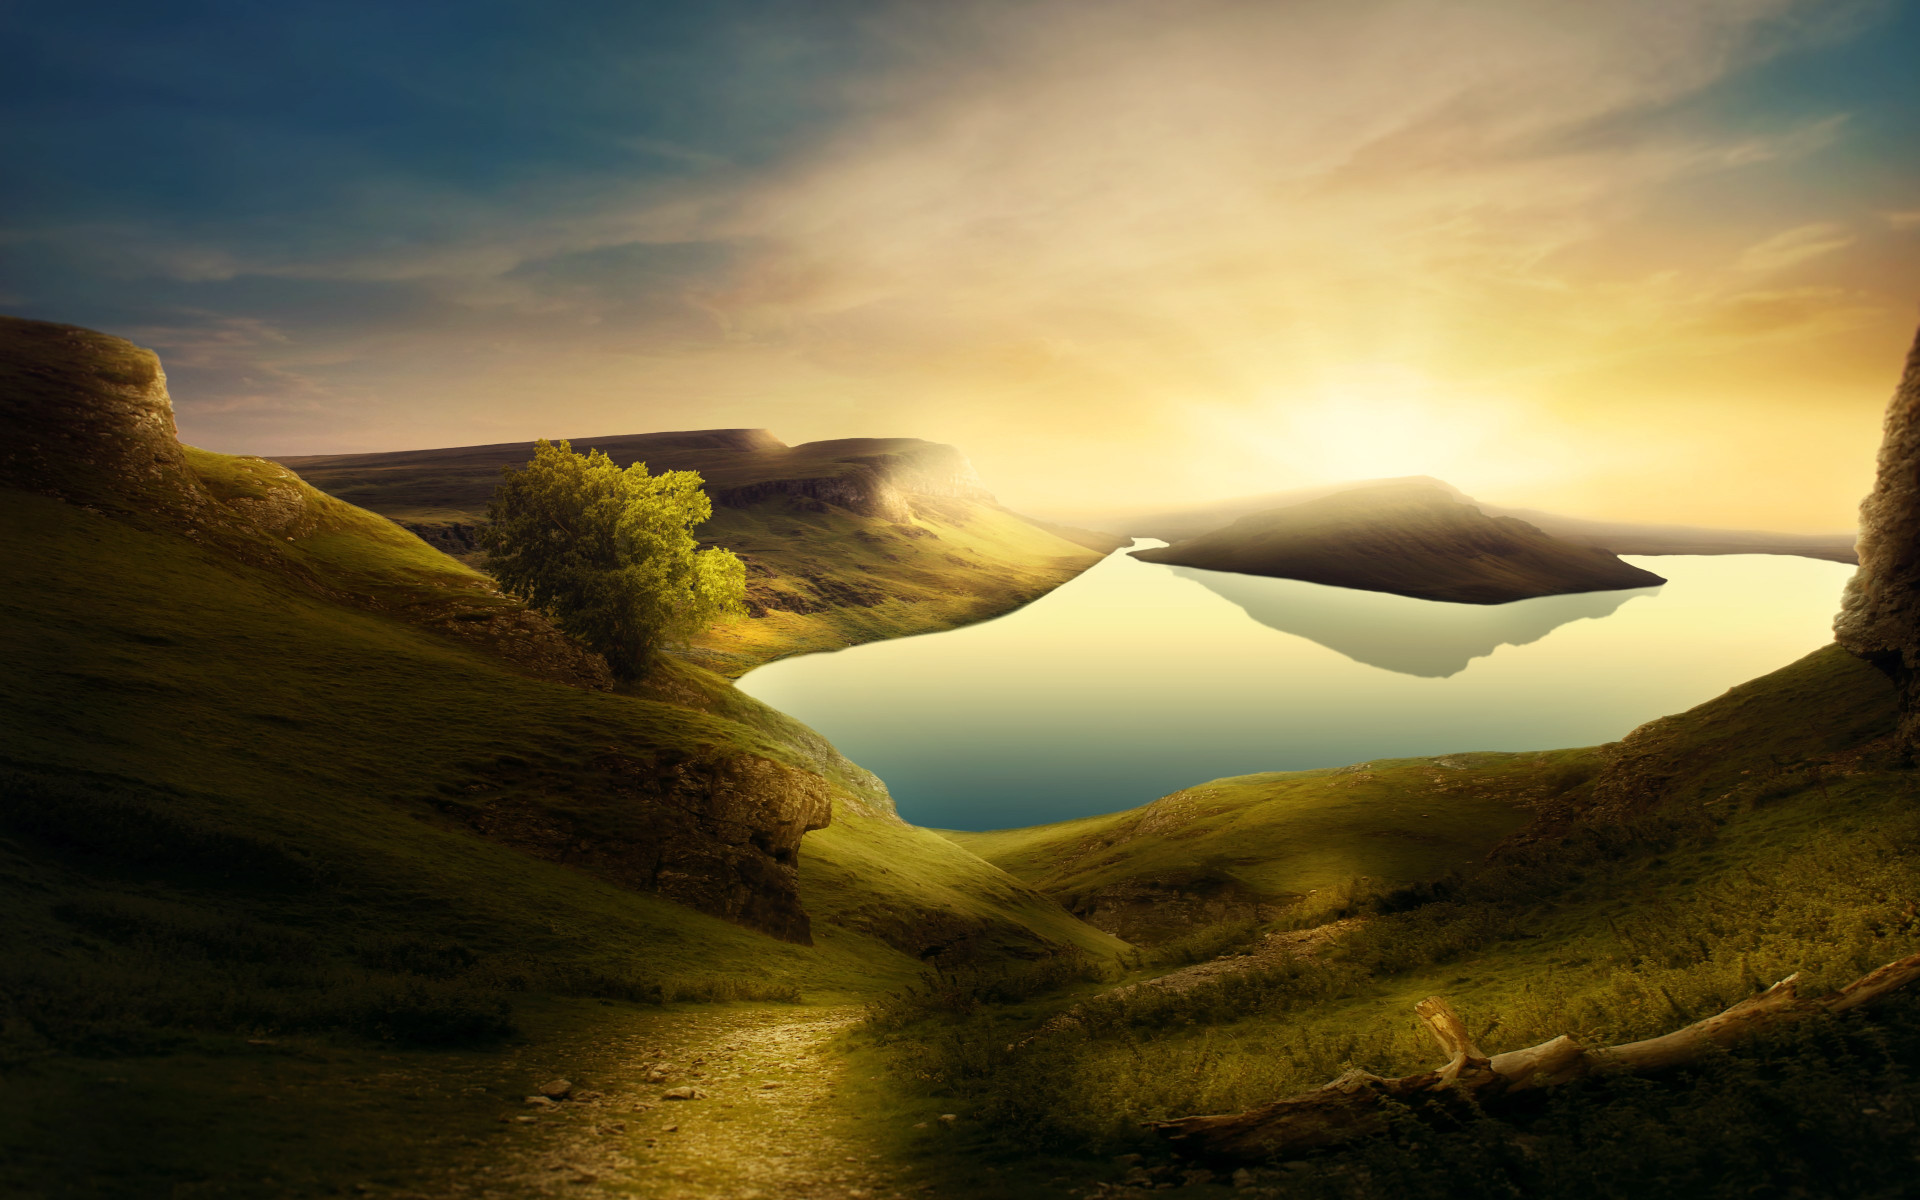 Dreamland landscape wallpaper 1920x1200